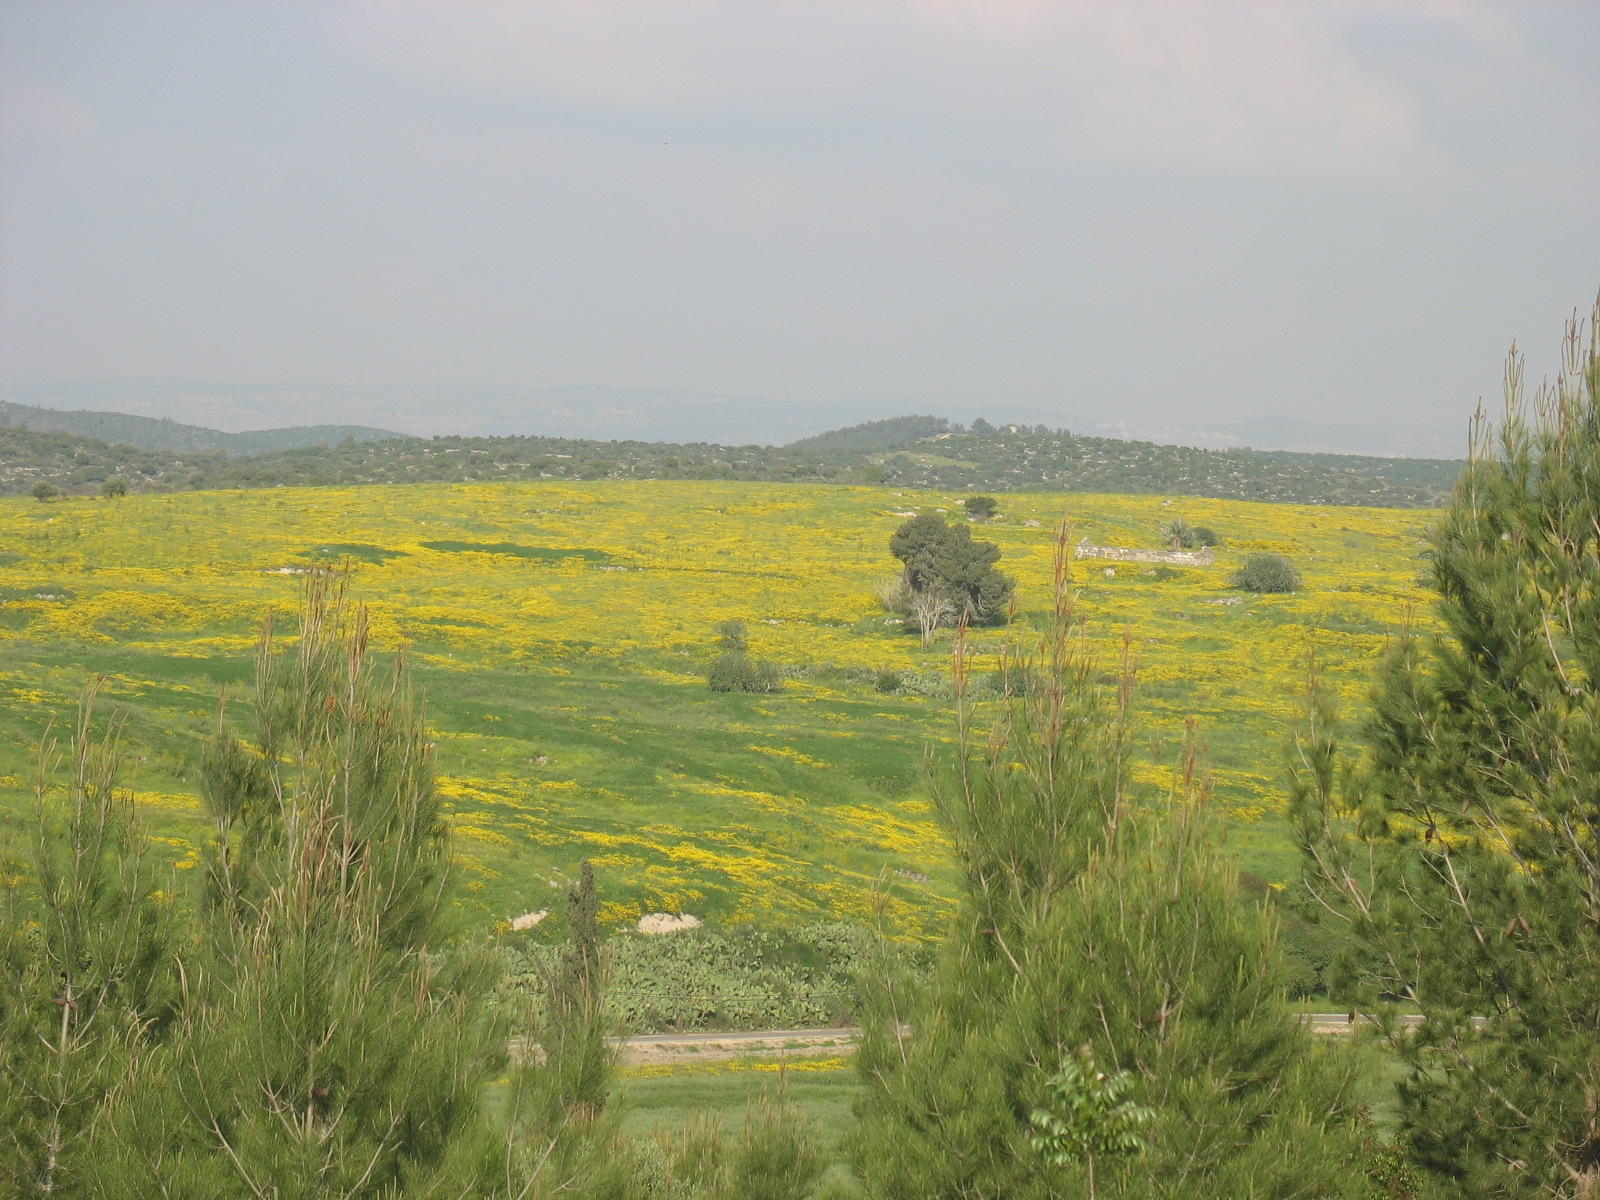 Bayt Jibrin - بيت جبرين : The beautiful landscape, the destroyed village appears in the background